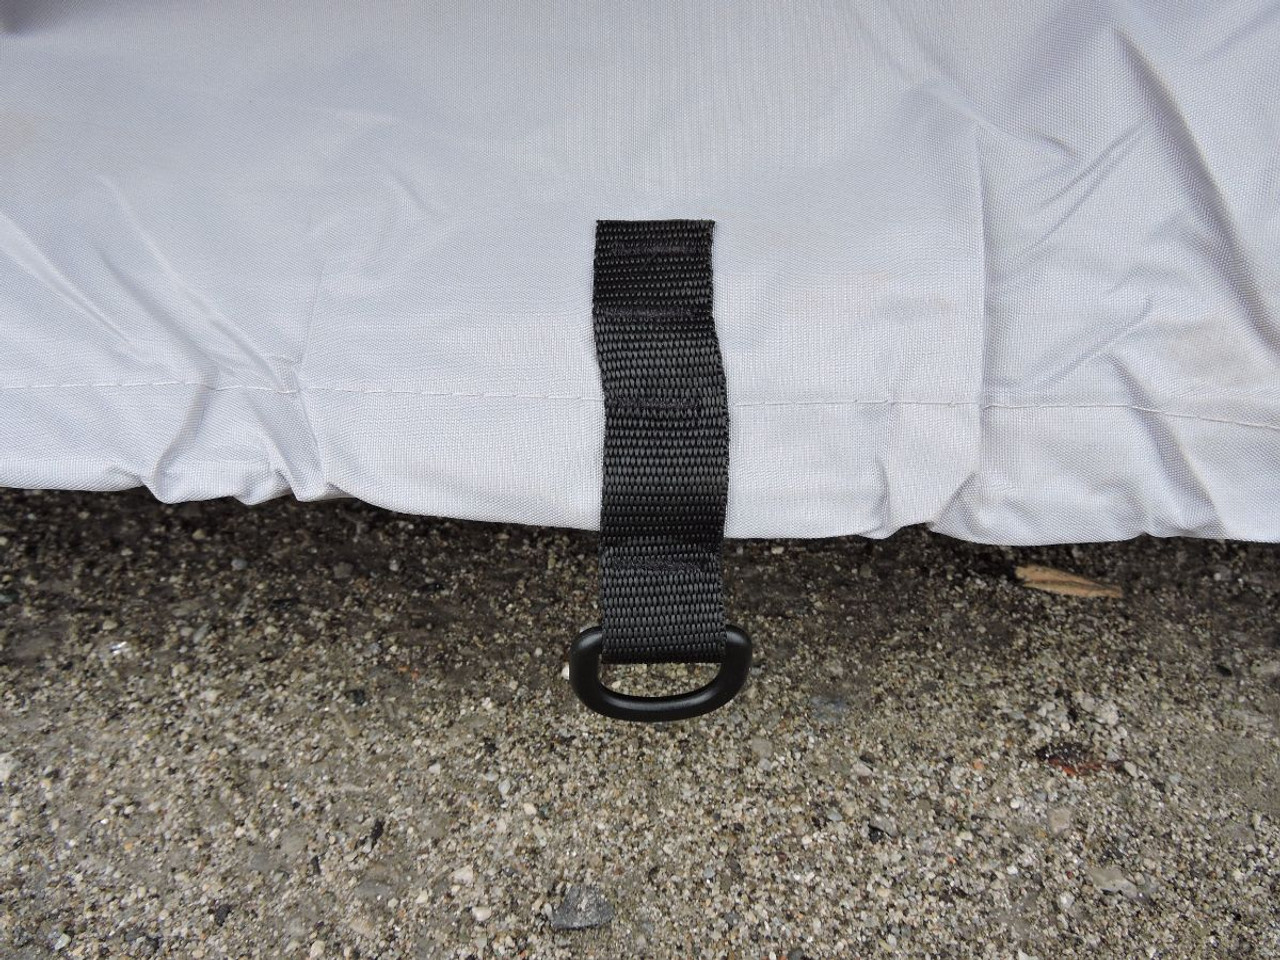 Venture UTV side by side cover strong elastic hem and tie downs